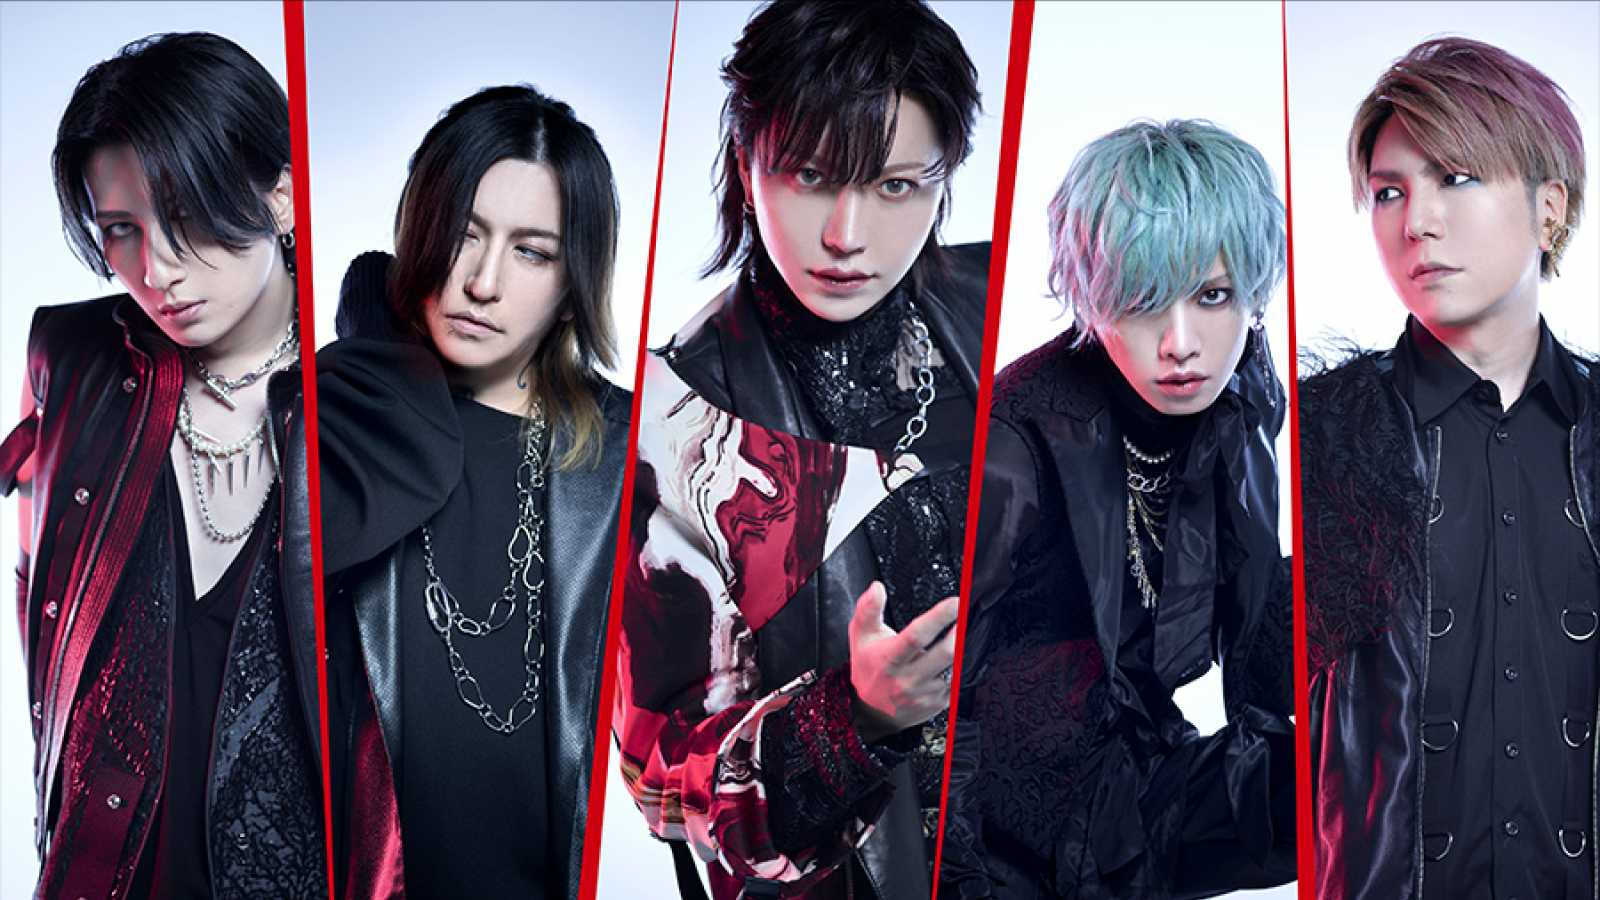 New EP from ALICE NINE. © ALICE NINE. All rights reserved.